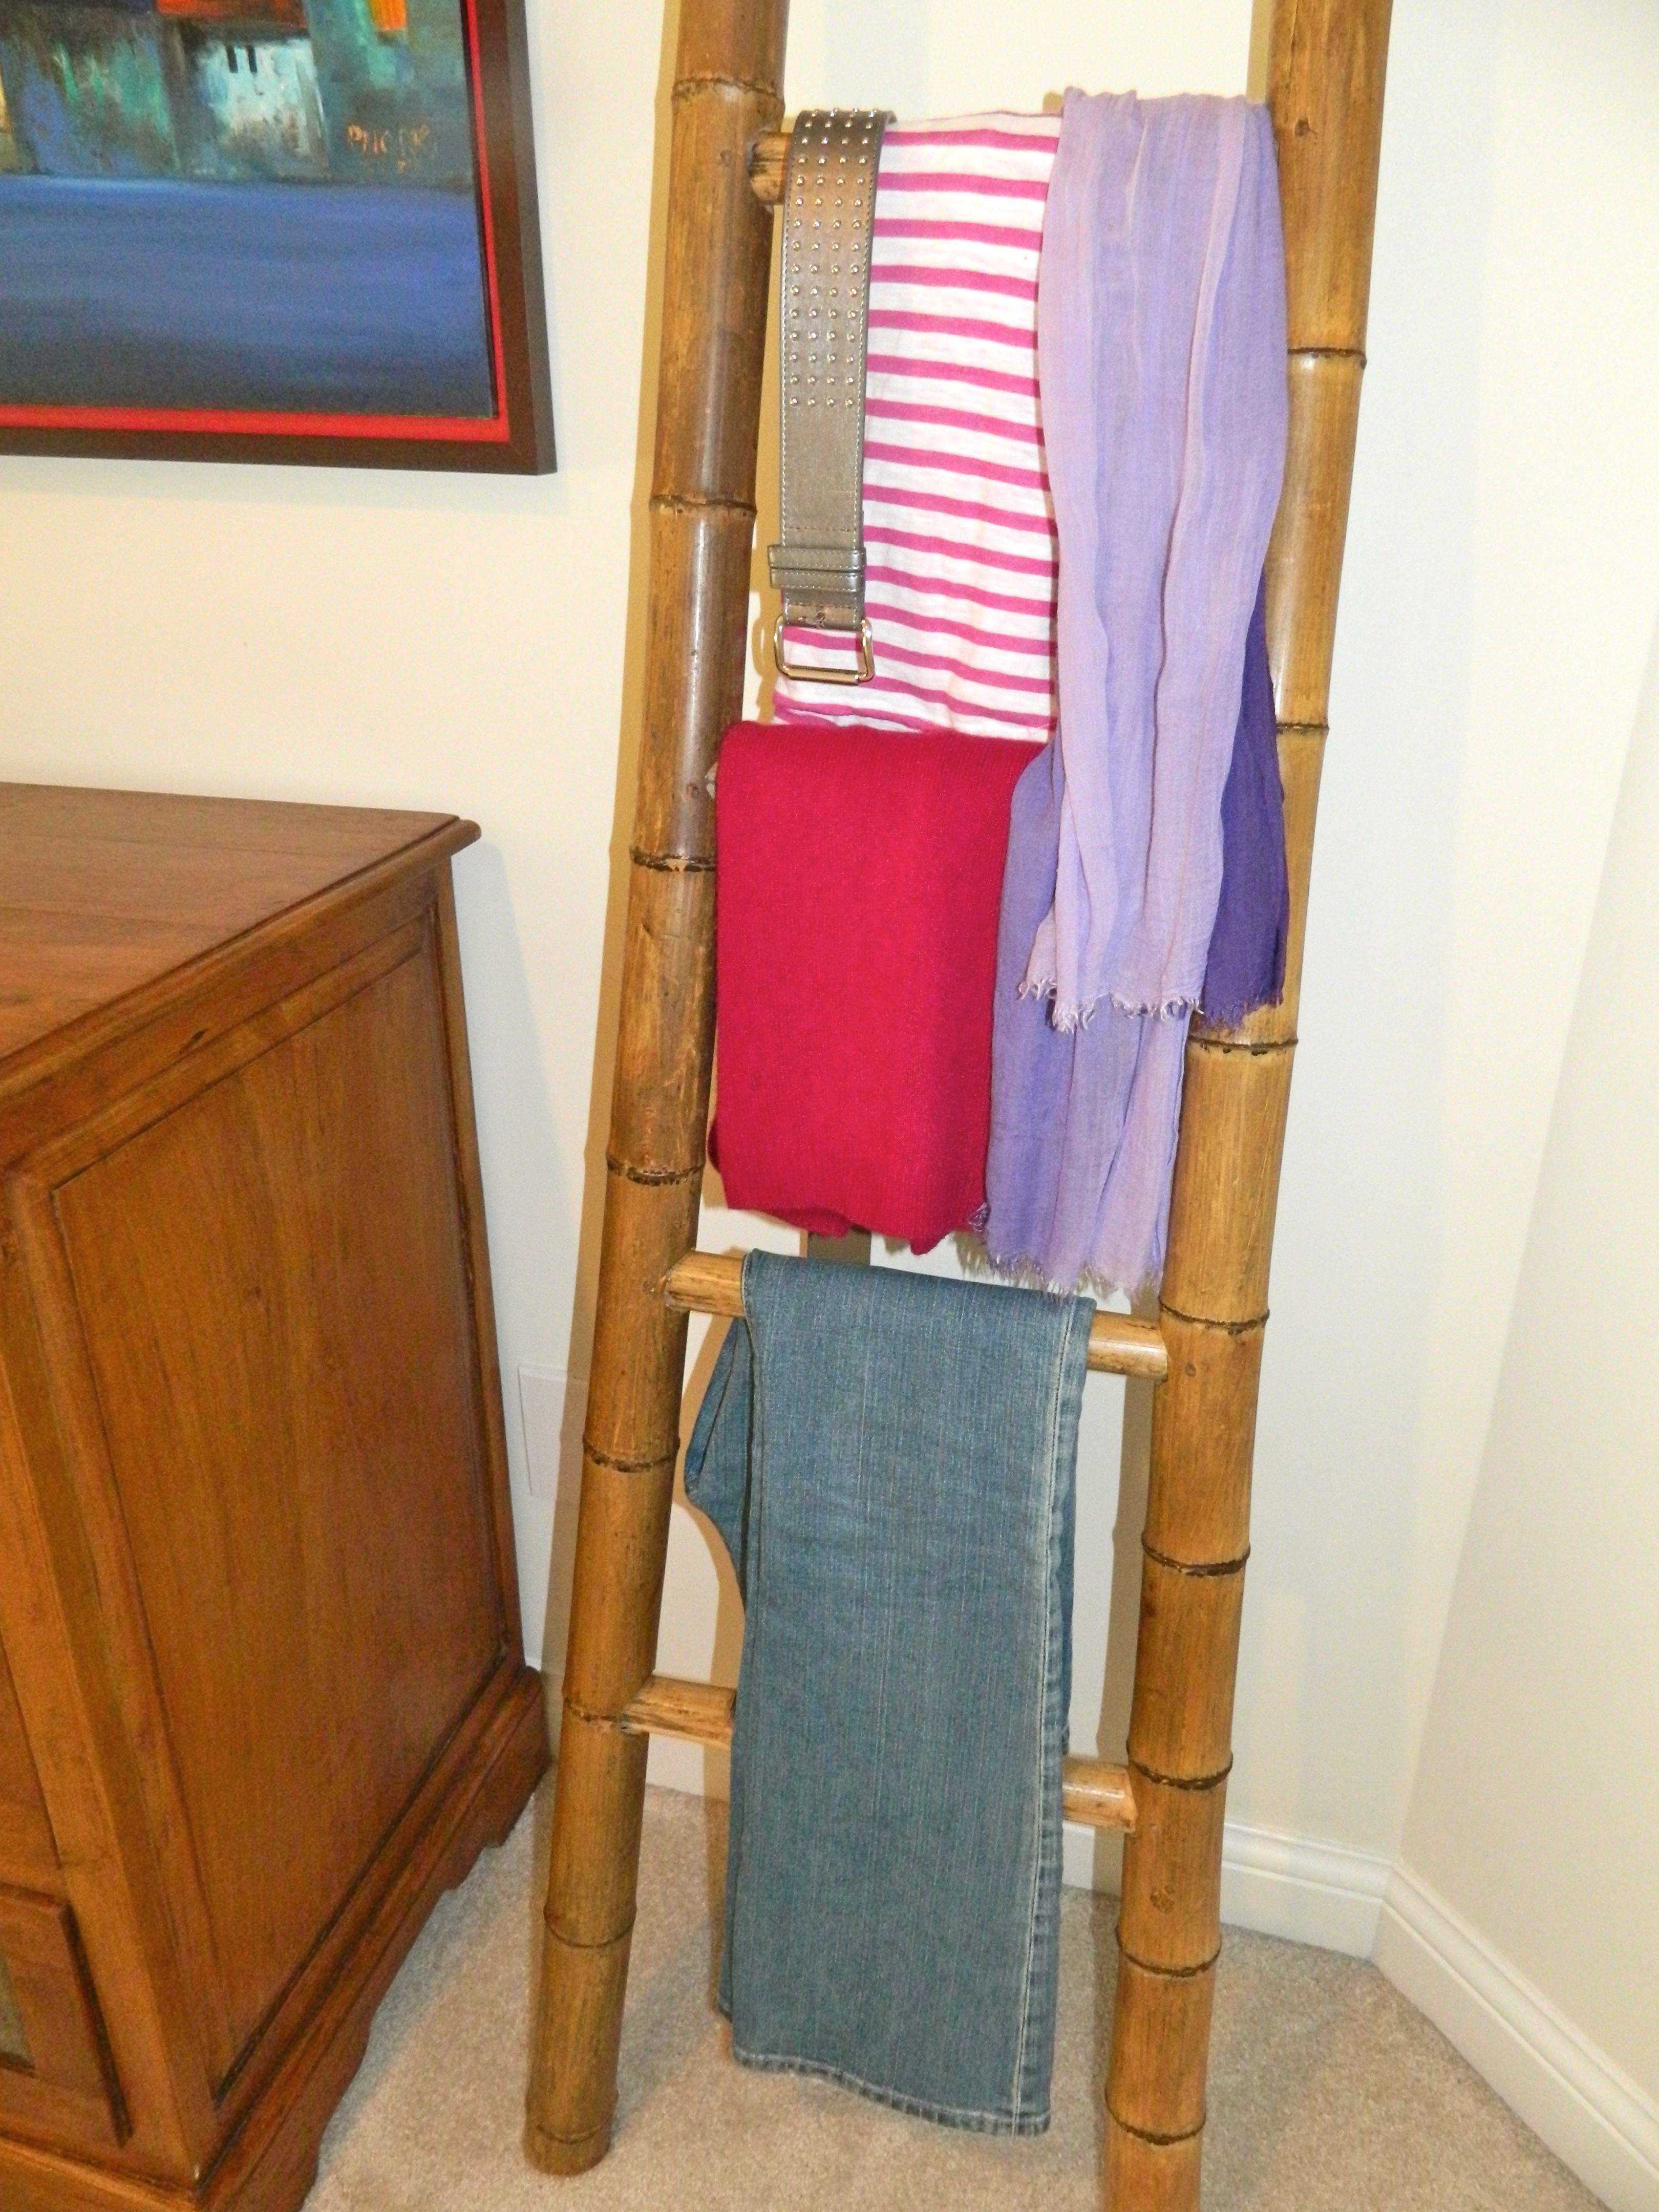 A ladder makes a great place to hang clothes